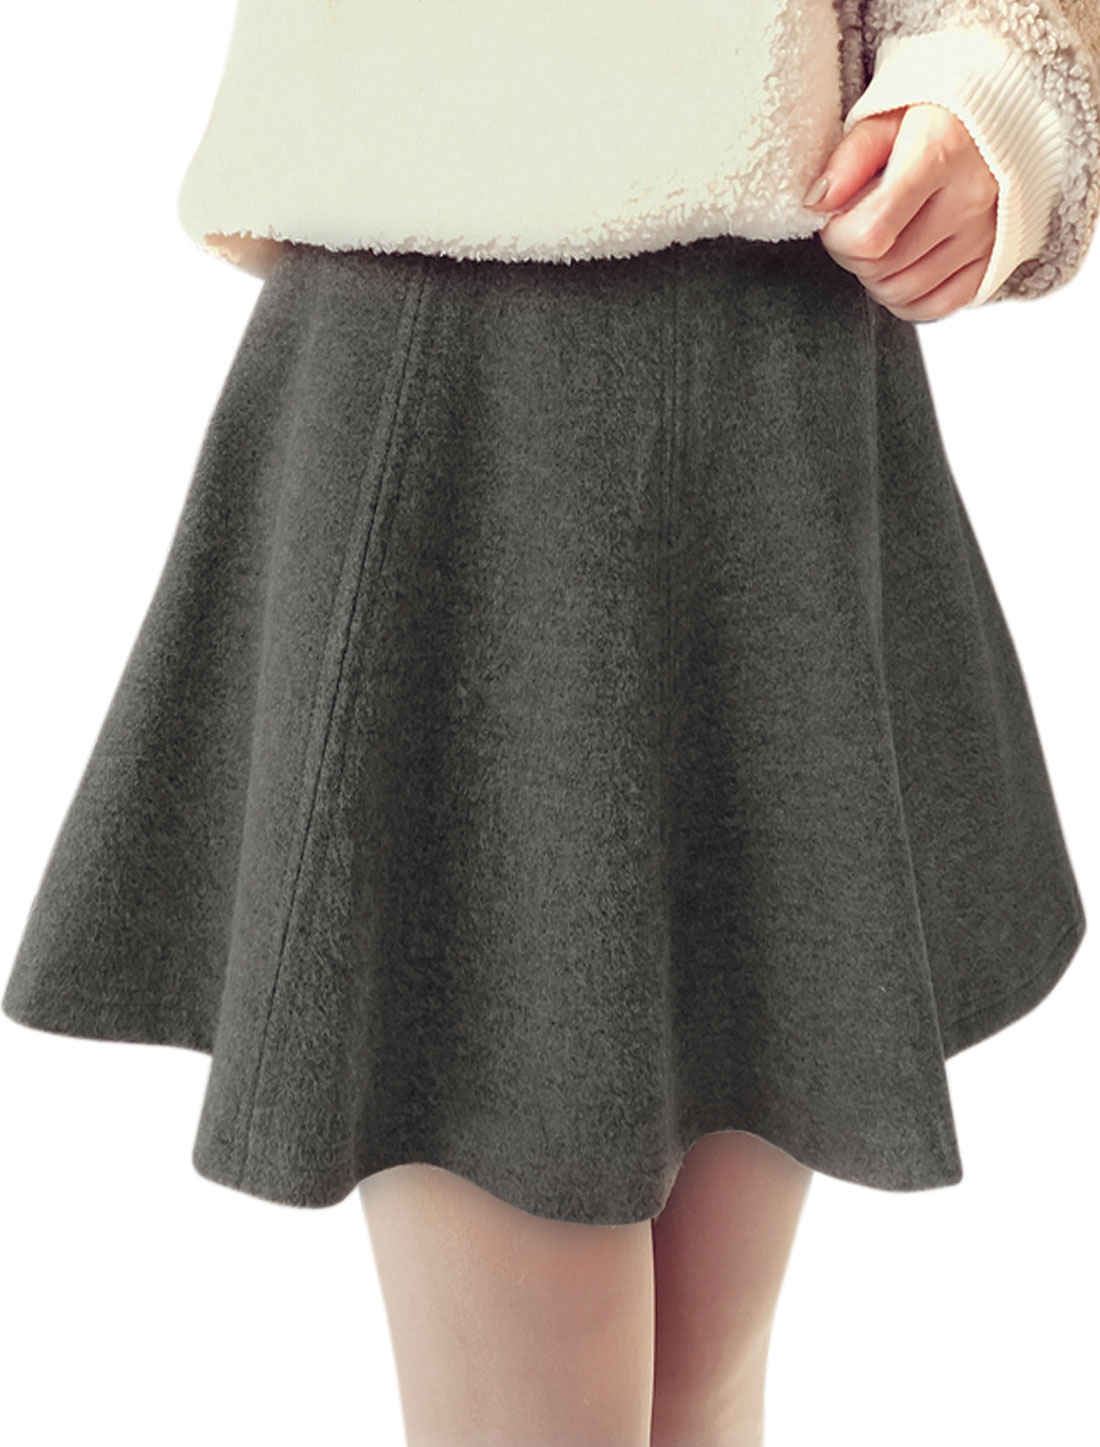 Women High Rise Seamed Worsted Mini A Line Skirt Gray M